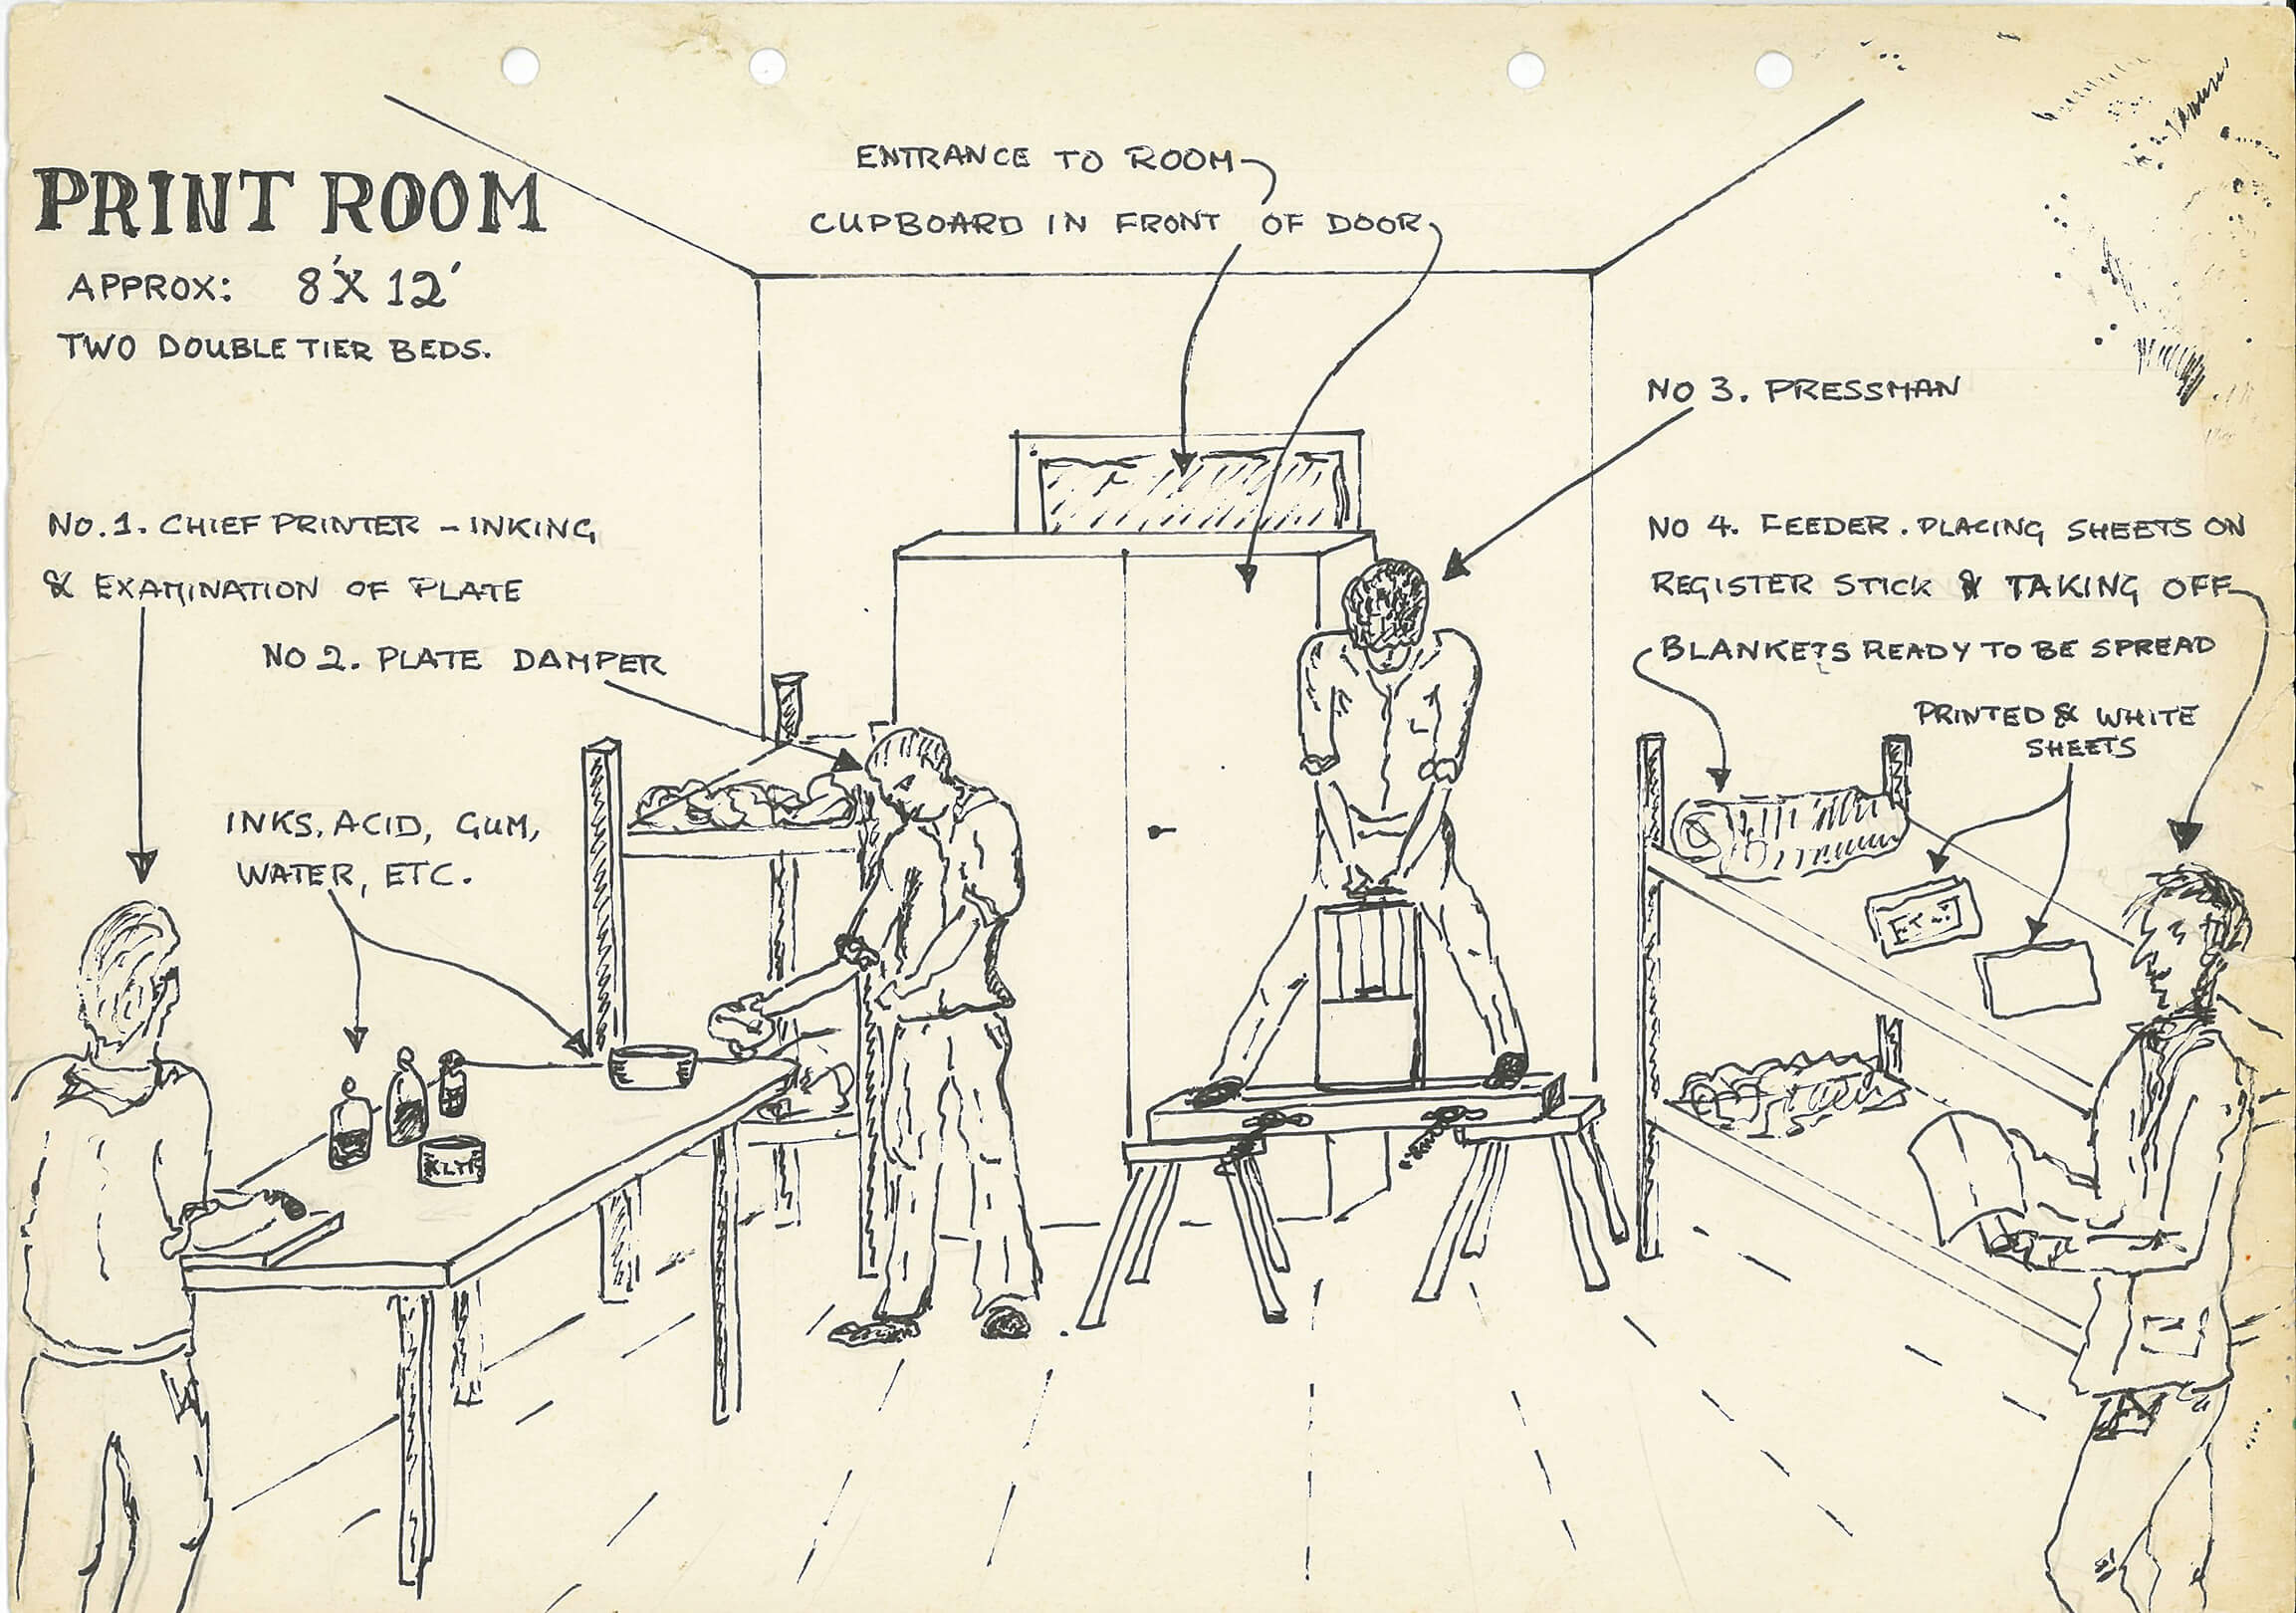 A drawing of the Print Room at LCP,